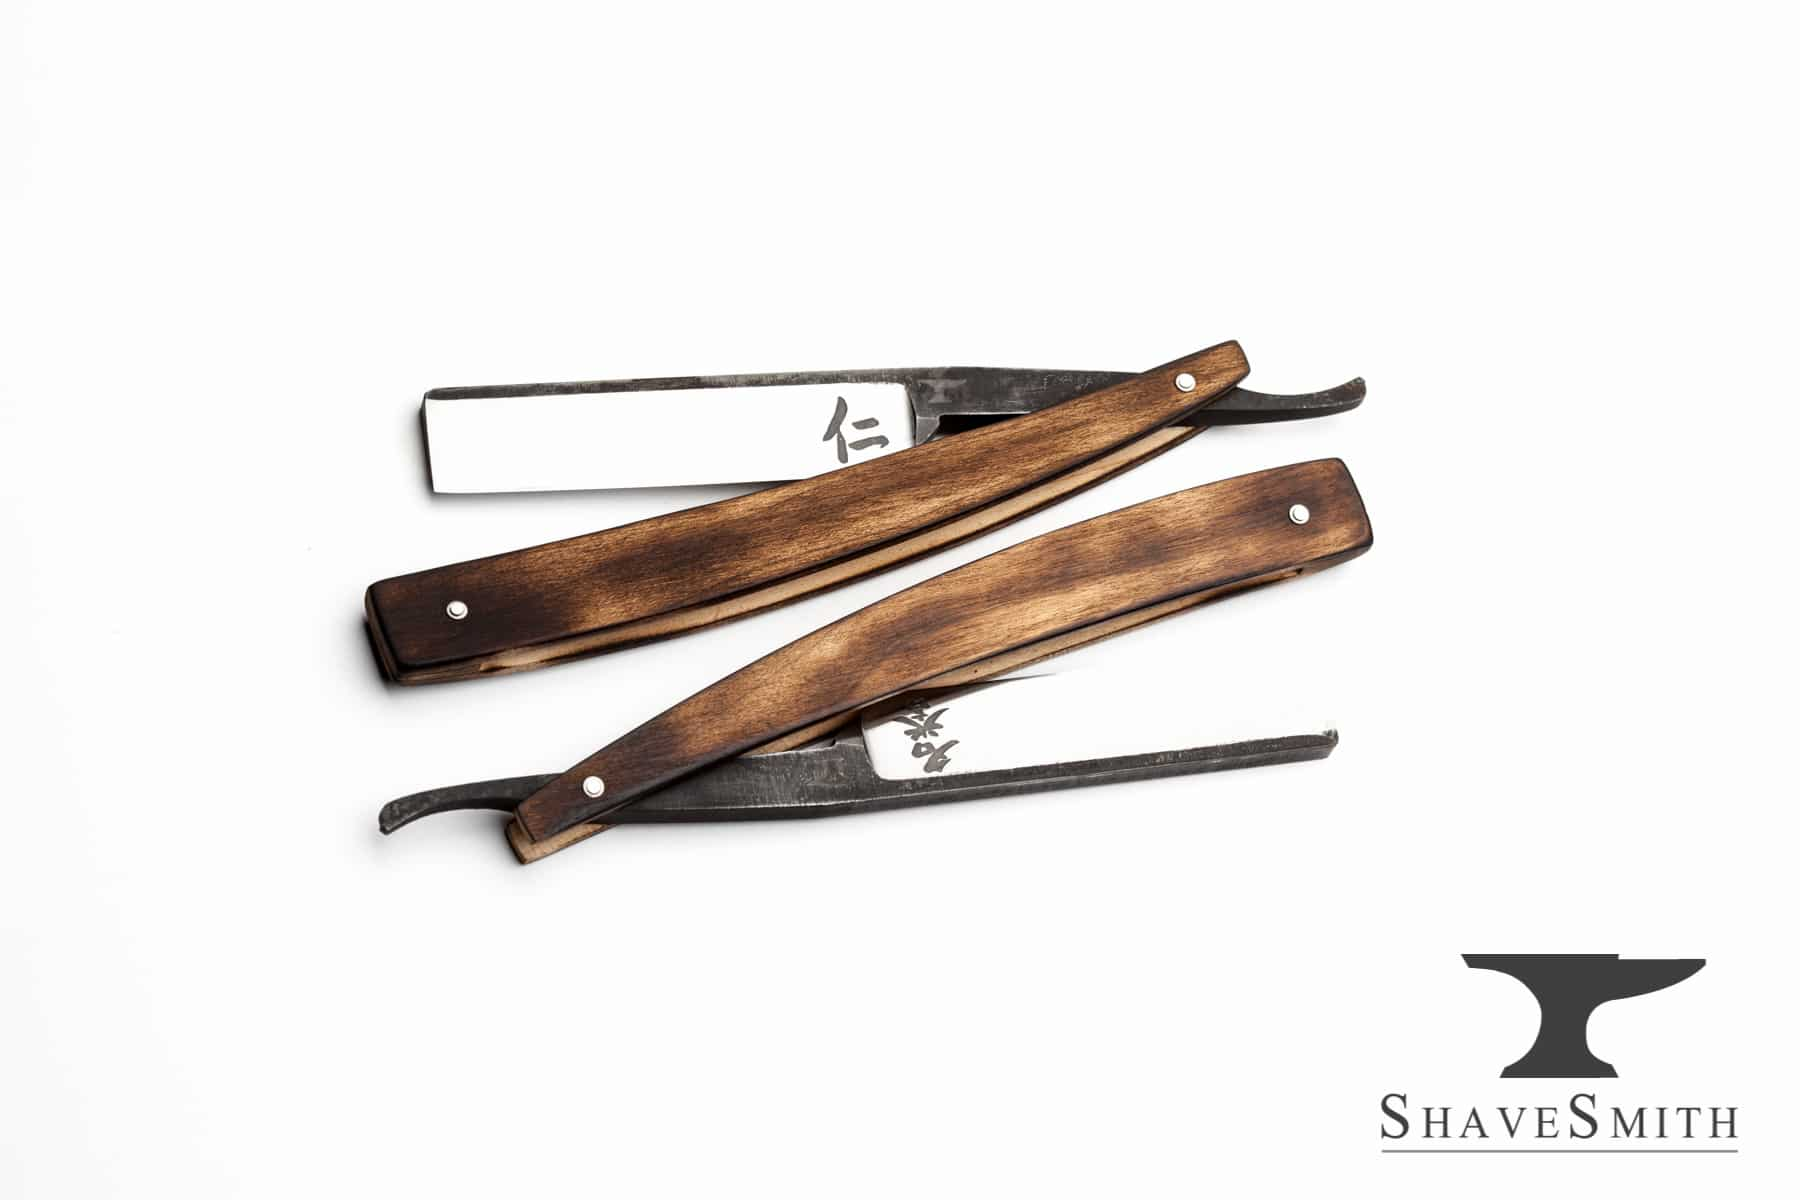 Only two materials are featured in this set: steel, maple. I've developed this set of razors merging the tradition of seven day straight razors sets, but drew inspiration from japanese motifs, and the seven principles of Bushido. Each straight razor has one of the japanese symbols engraved at the heel, representing the following principles that samurai would call upon. Rectitude  CourageBenevolencePolitenessVeracityHonorLoyaltyThe razors are then assigned unique places within the box, with matching marks engraved into the wood. The box itself is inspired by japanese toolboxes, using a unique locking mechanism for the lid that is a simple wood wedge.